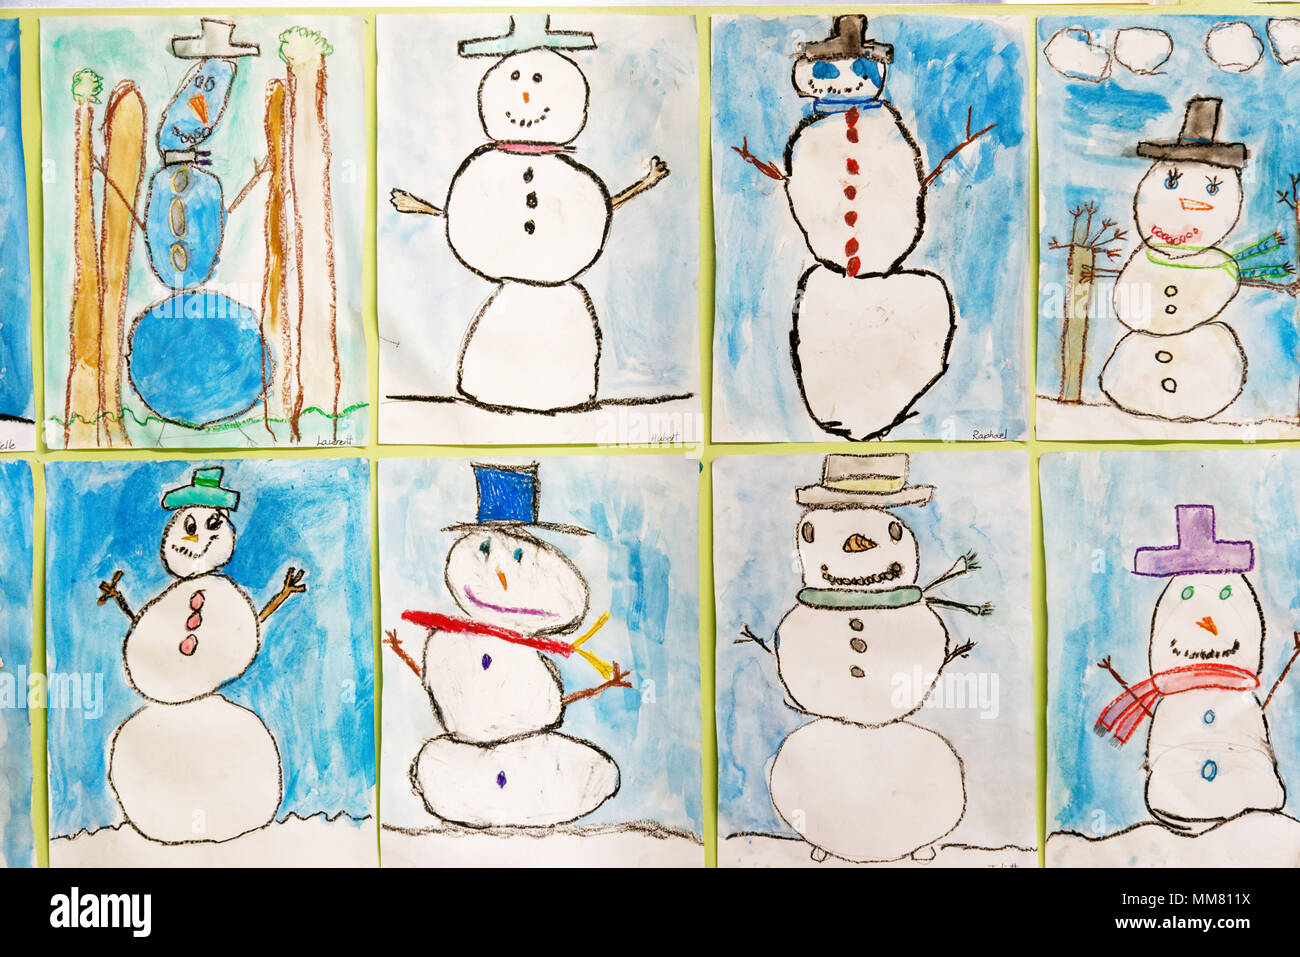 Children's art works on the wall in their school - pictures of snowmen - Stock Image